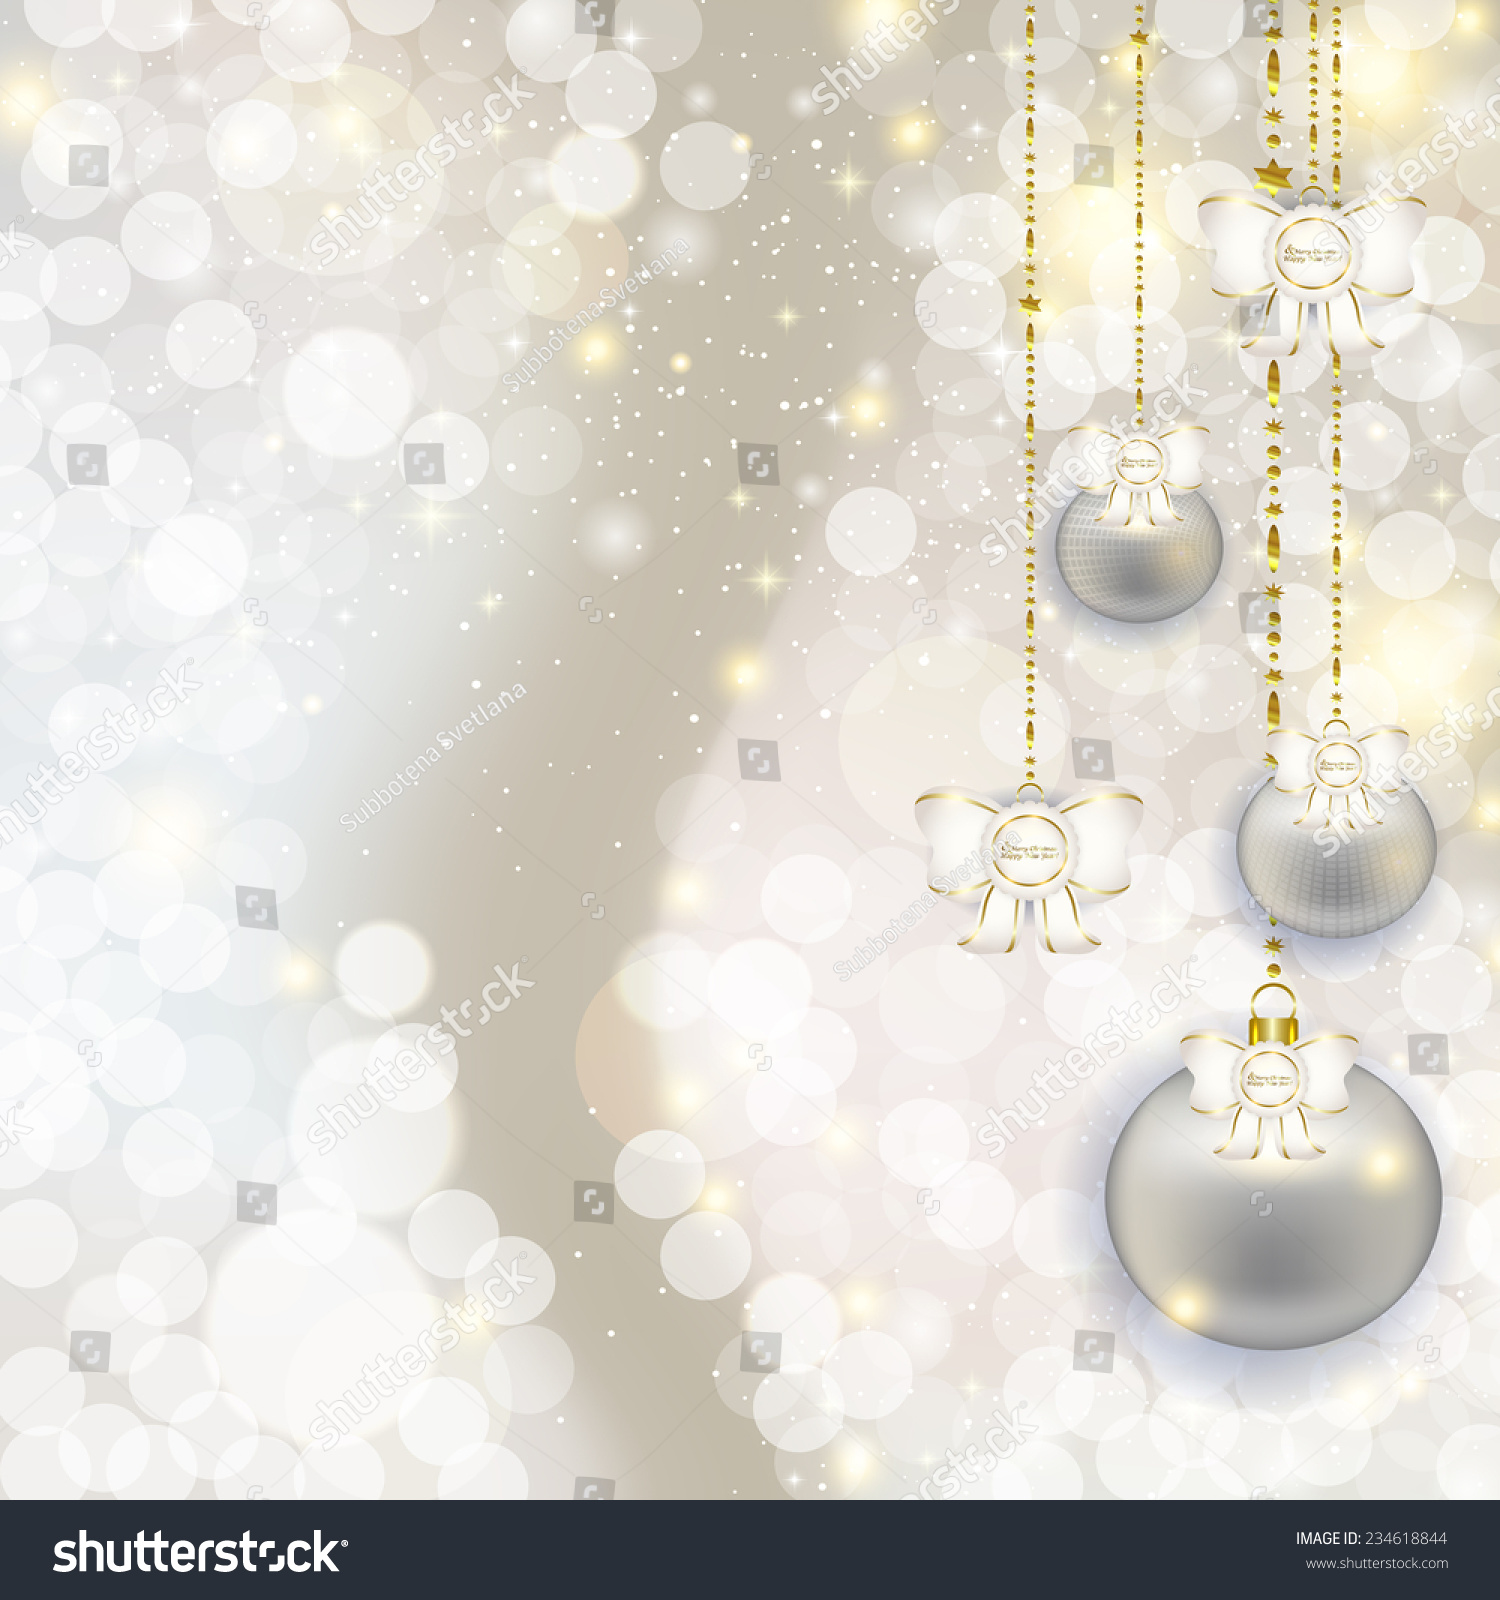 christmas hanging balls on abstract pearl background with highlights and shinevector illustration of holiday - The Christmas Pearl